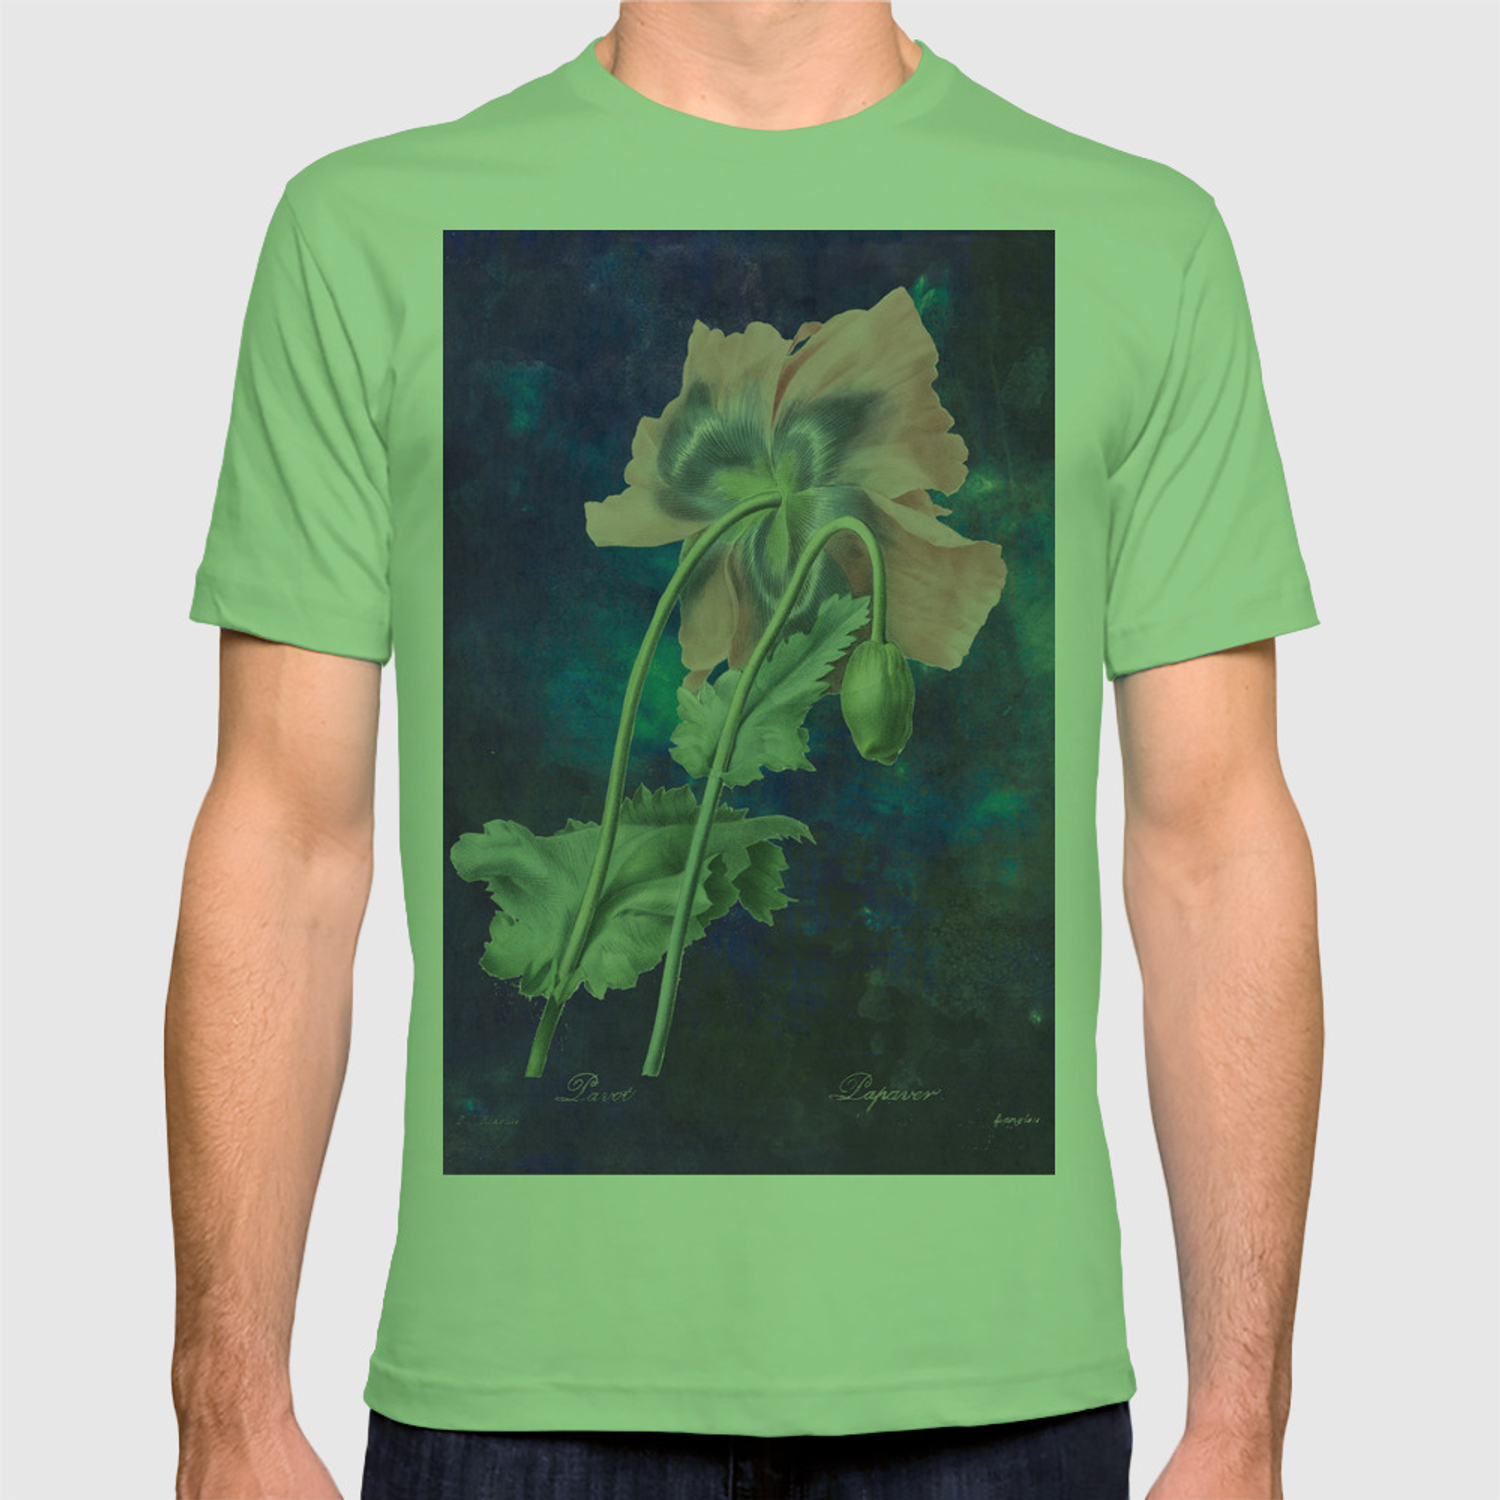 ee0d21adee927 French Poppy - Vintage Botanical Illustration Collage T-shirt